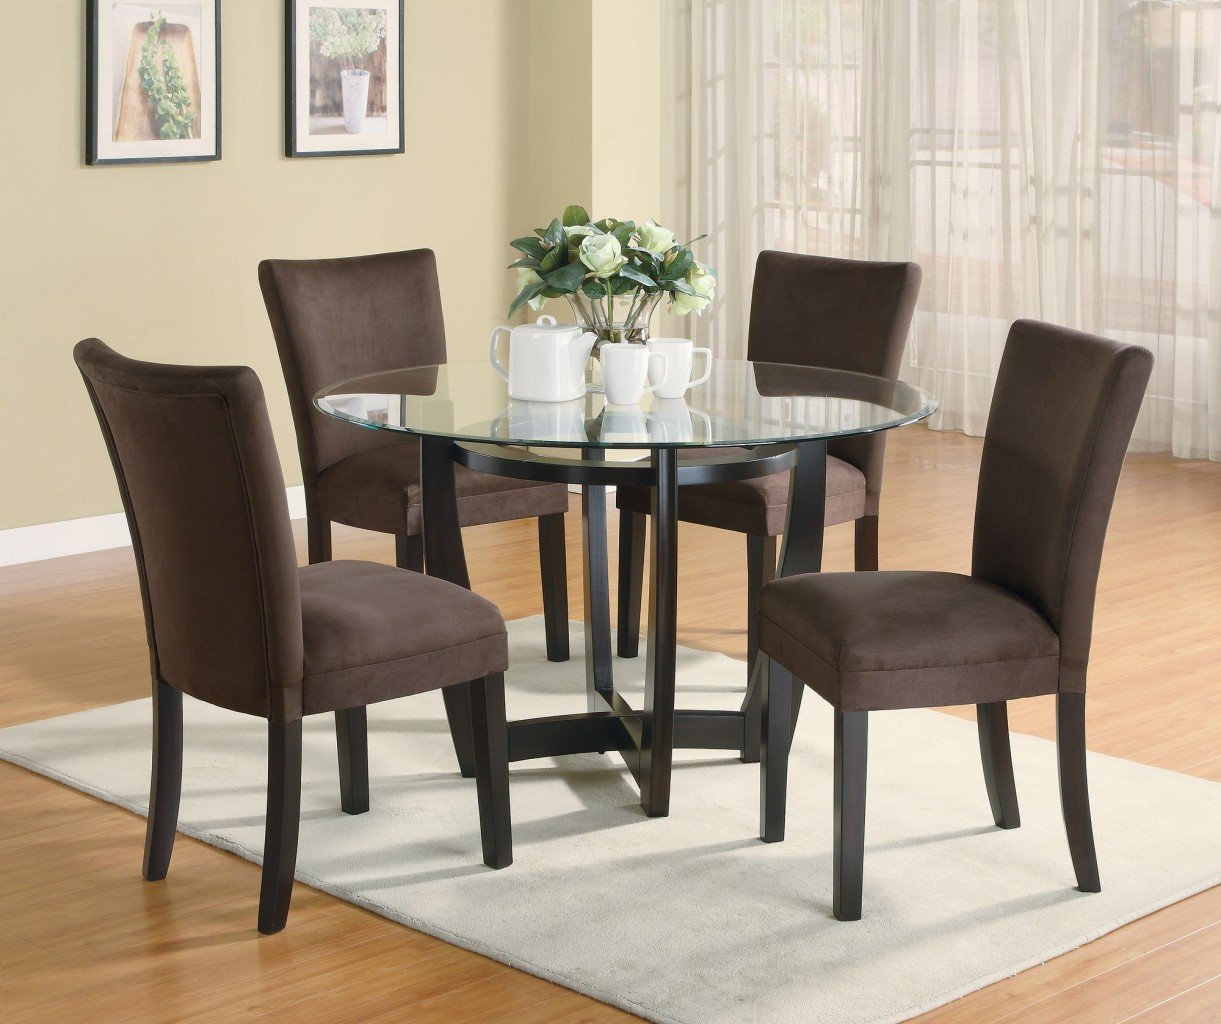 cheap dining room table and chair sets | Cheap Dining Room Table Sets - Home Furniture Design